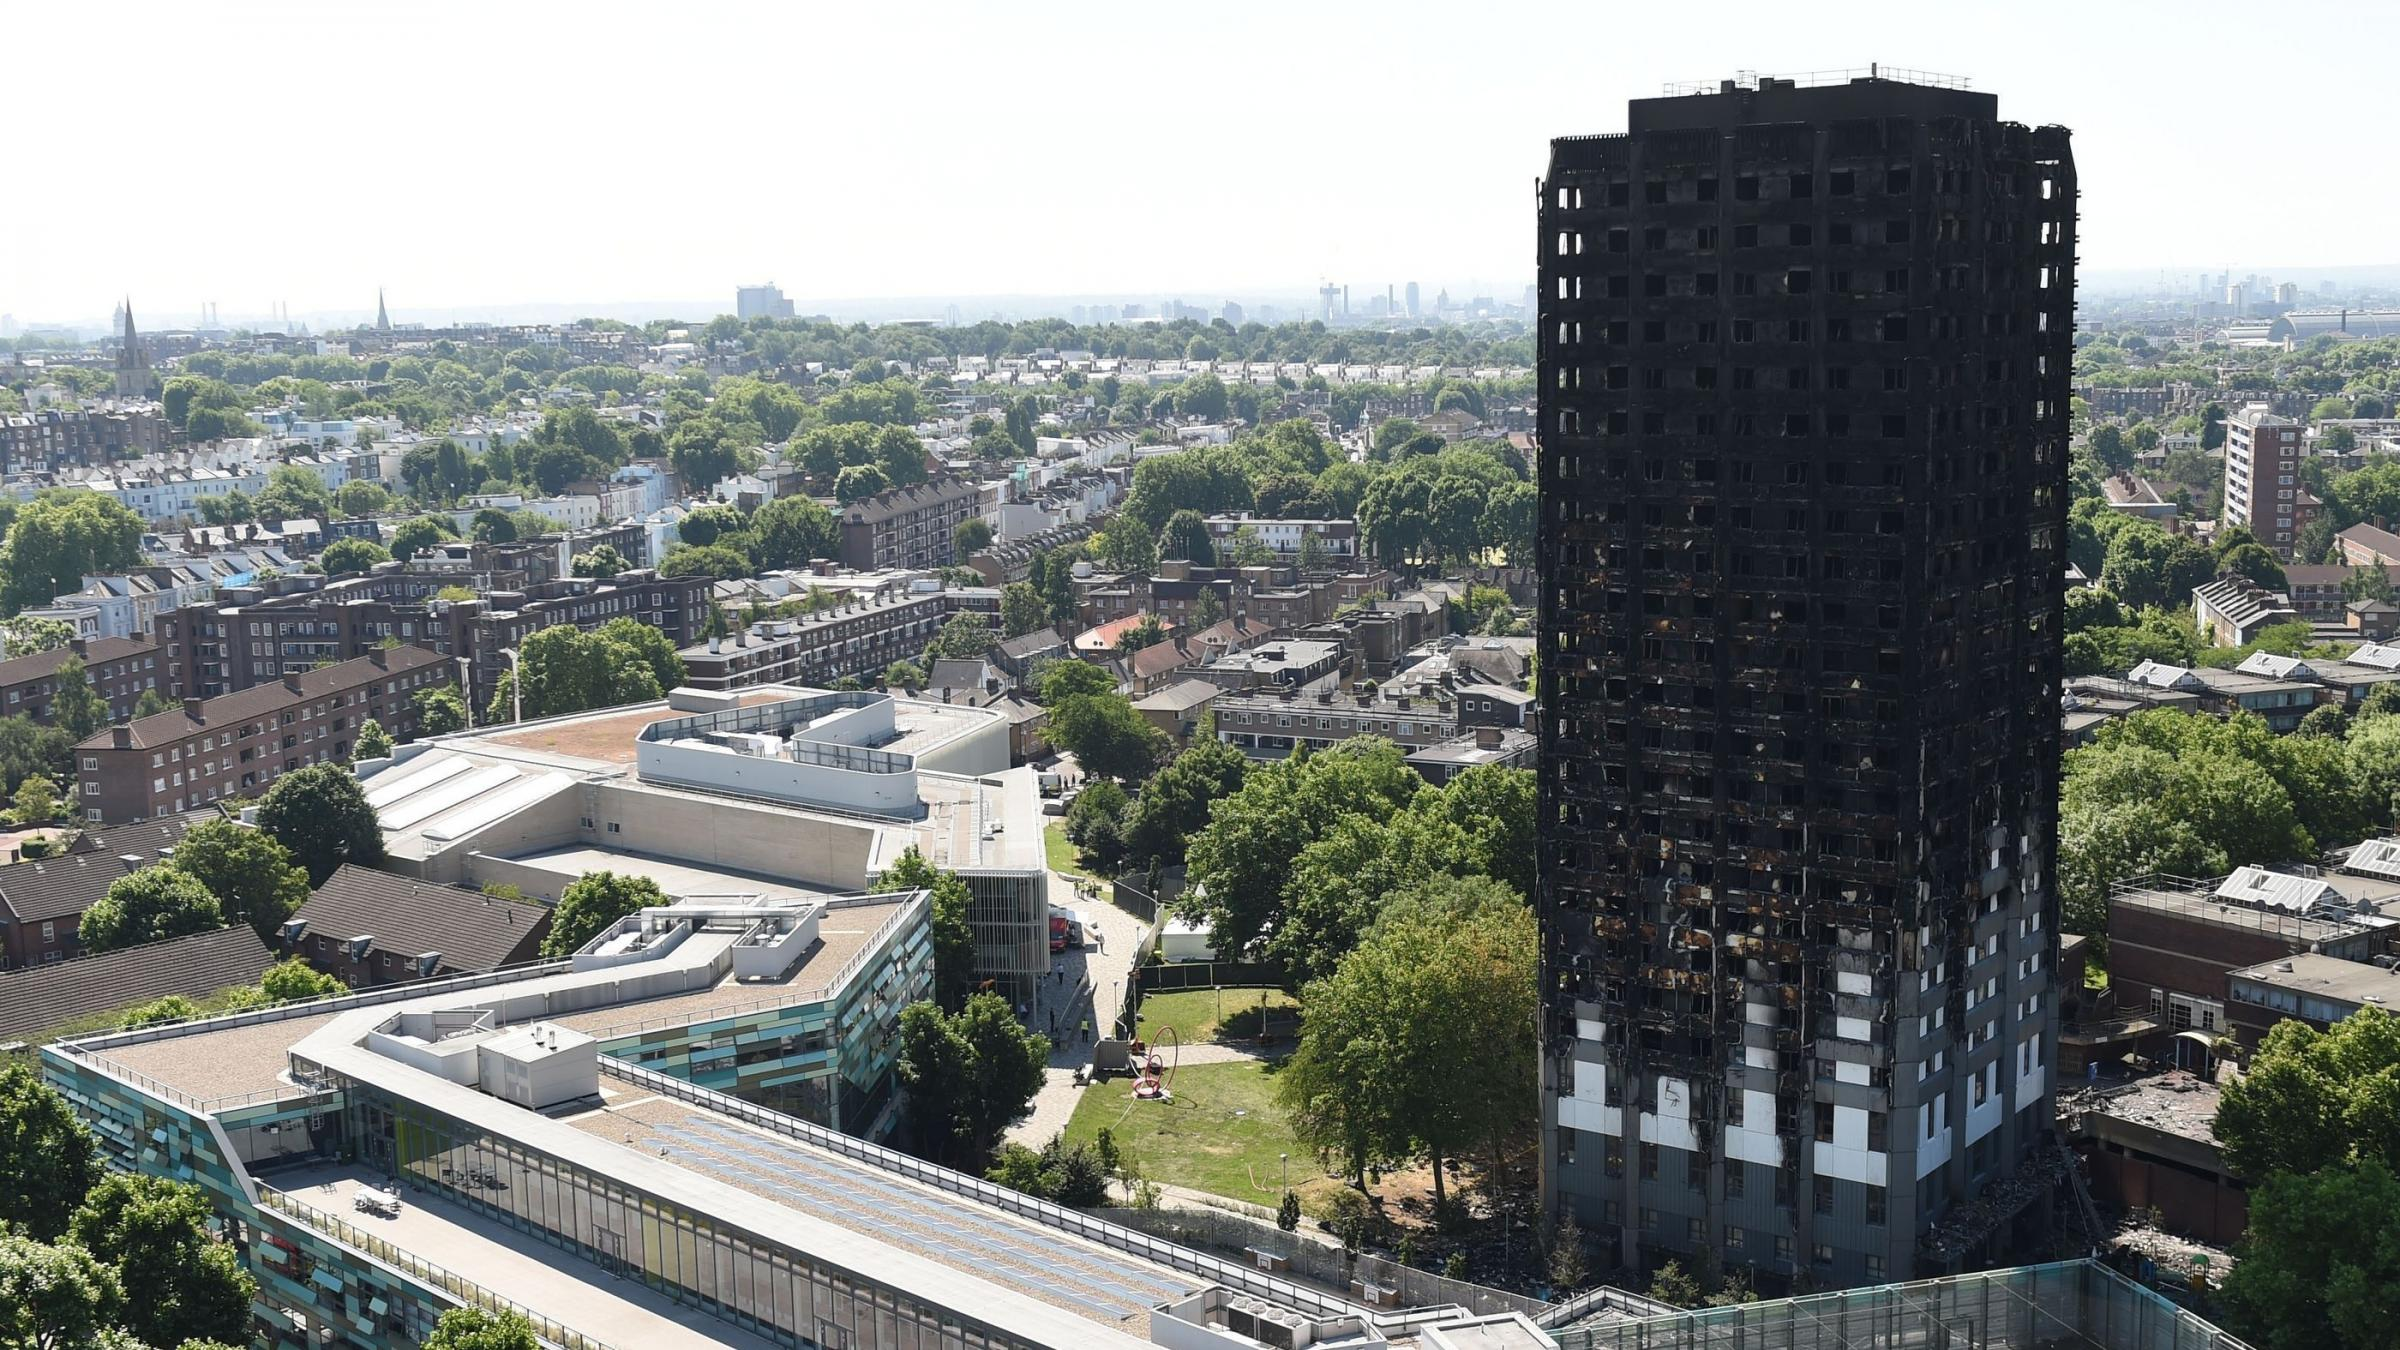 London Fire: Likely Grenfell Tower Death Toll Rises to 79